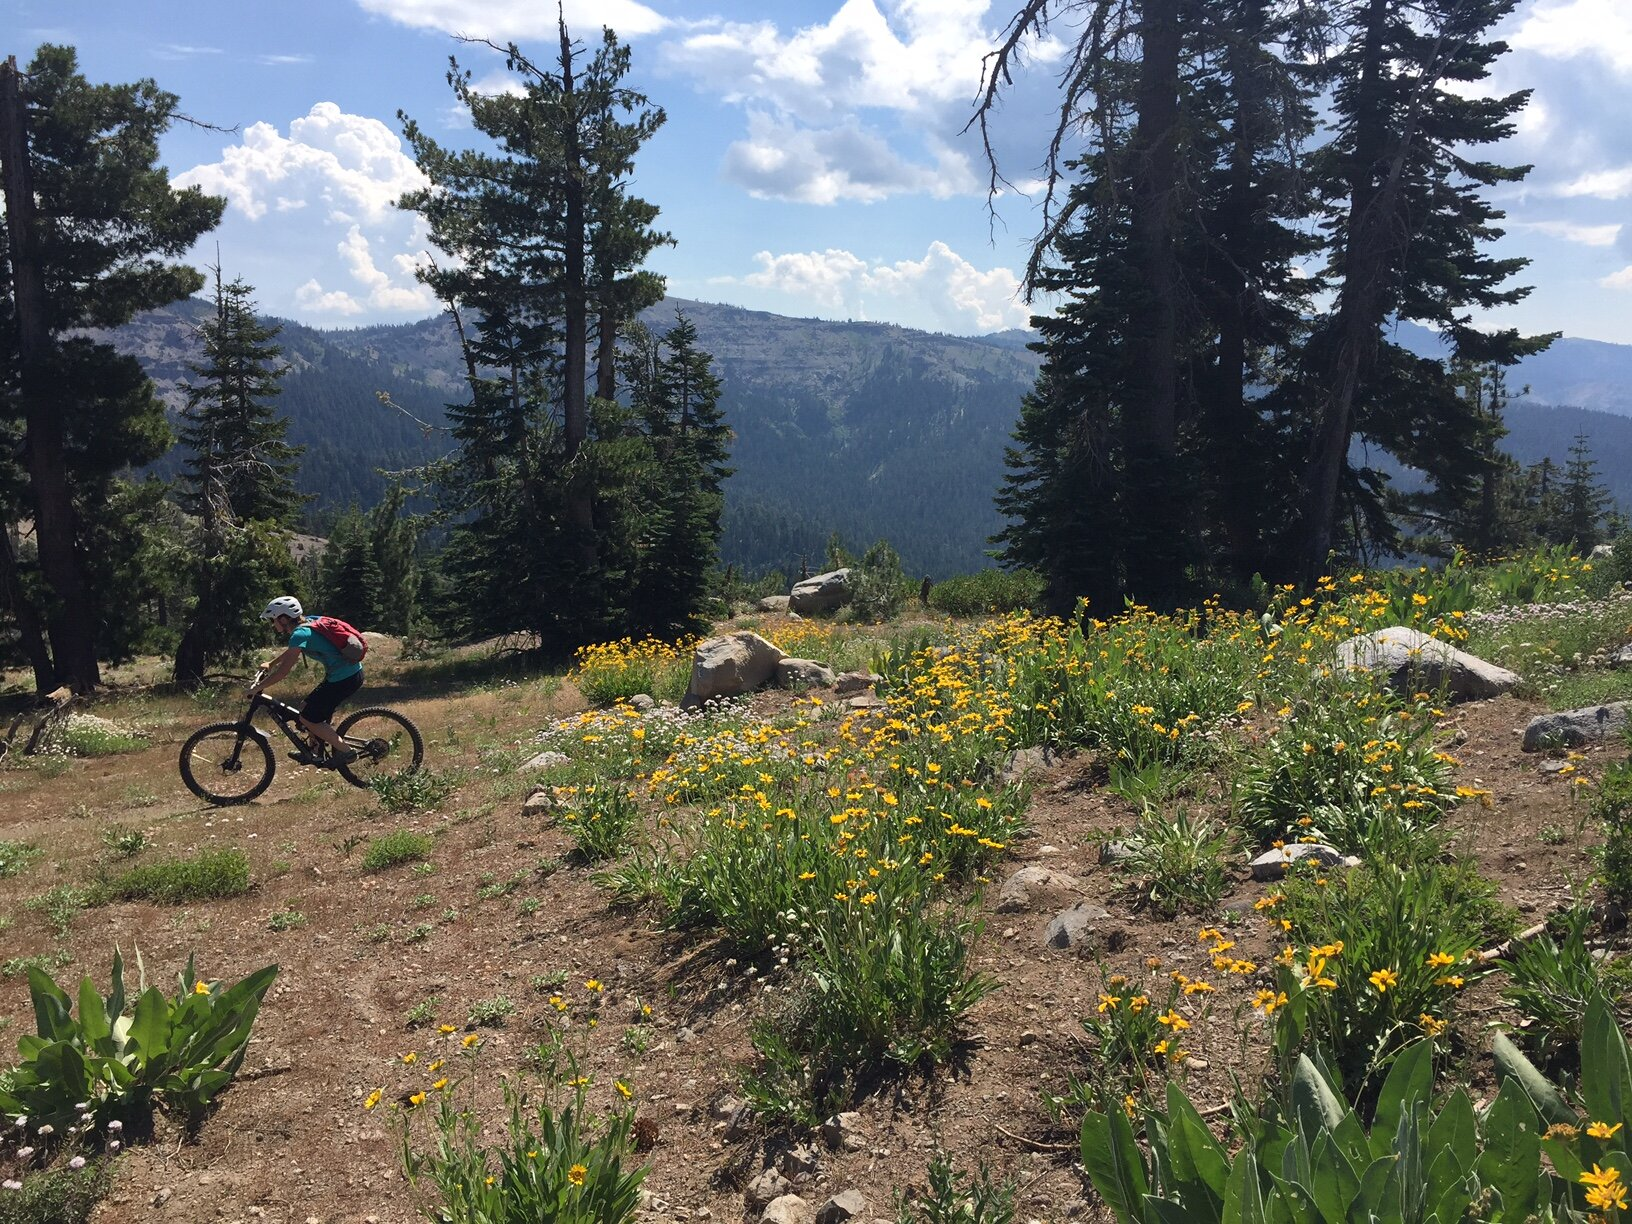 A mountain biker descends from Rowton Peak with the Sierra Crest in the background